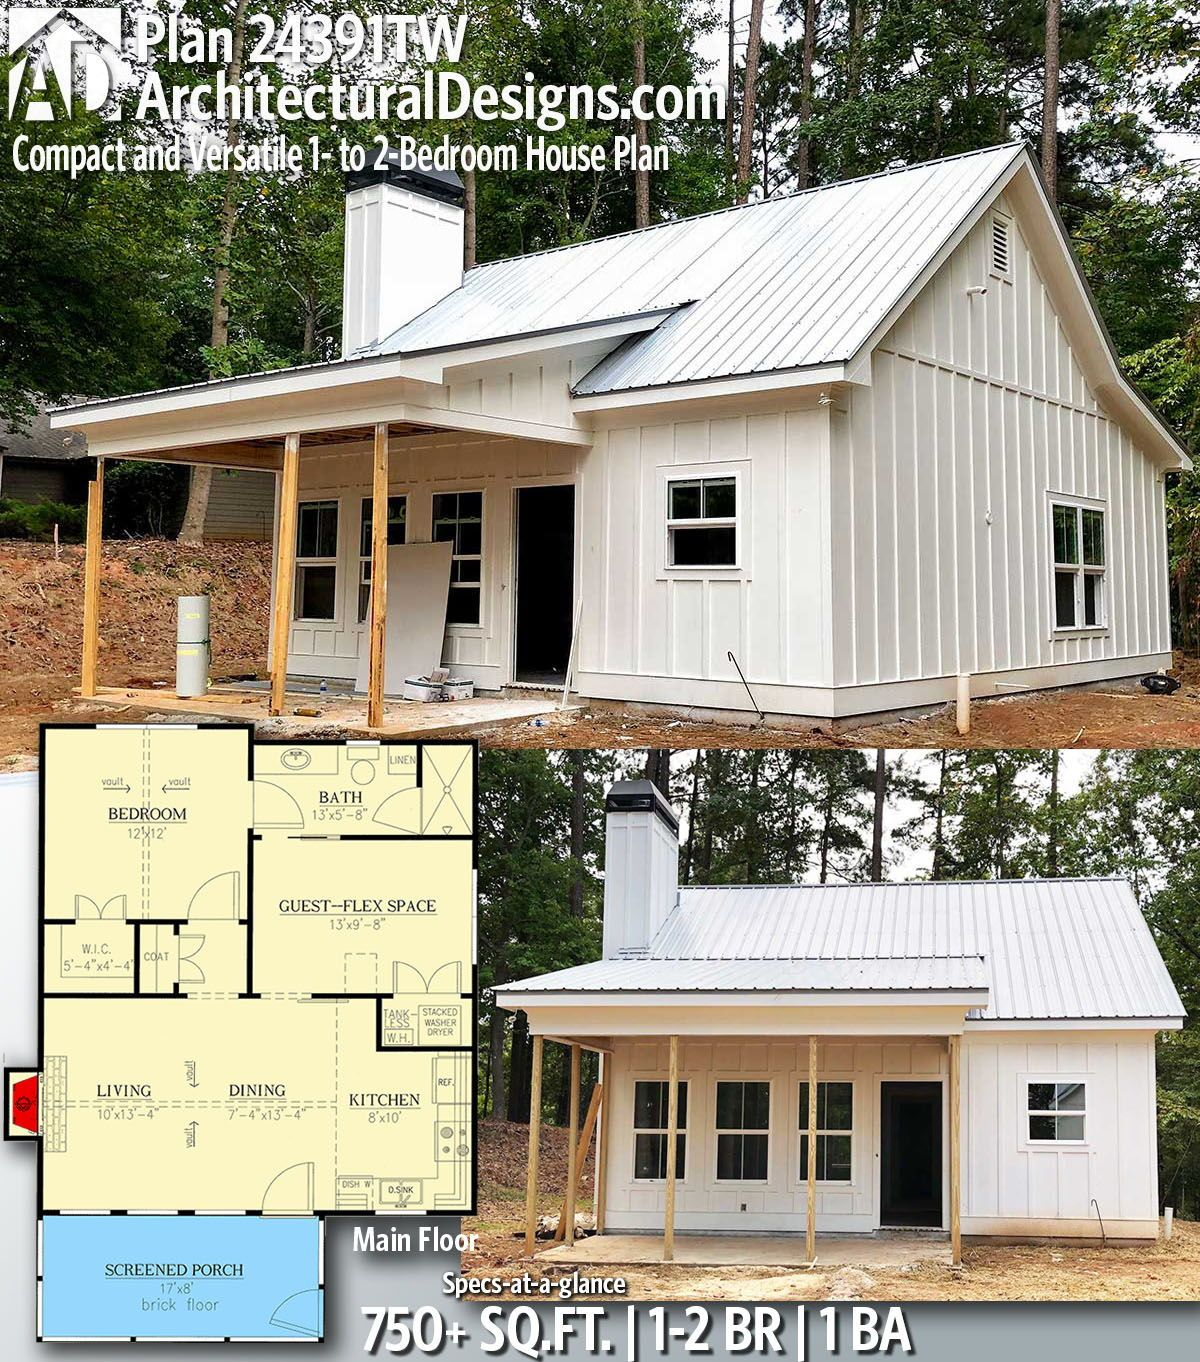 Plan 24391tw Compact And Versatile 1 To 2 Bedroom House